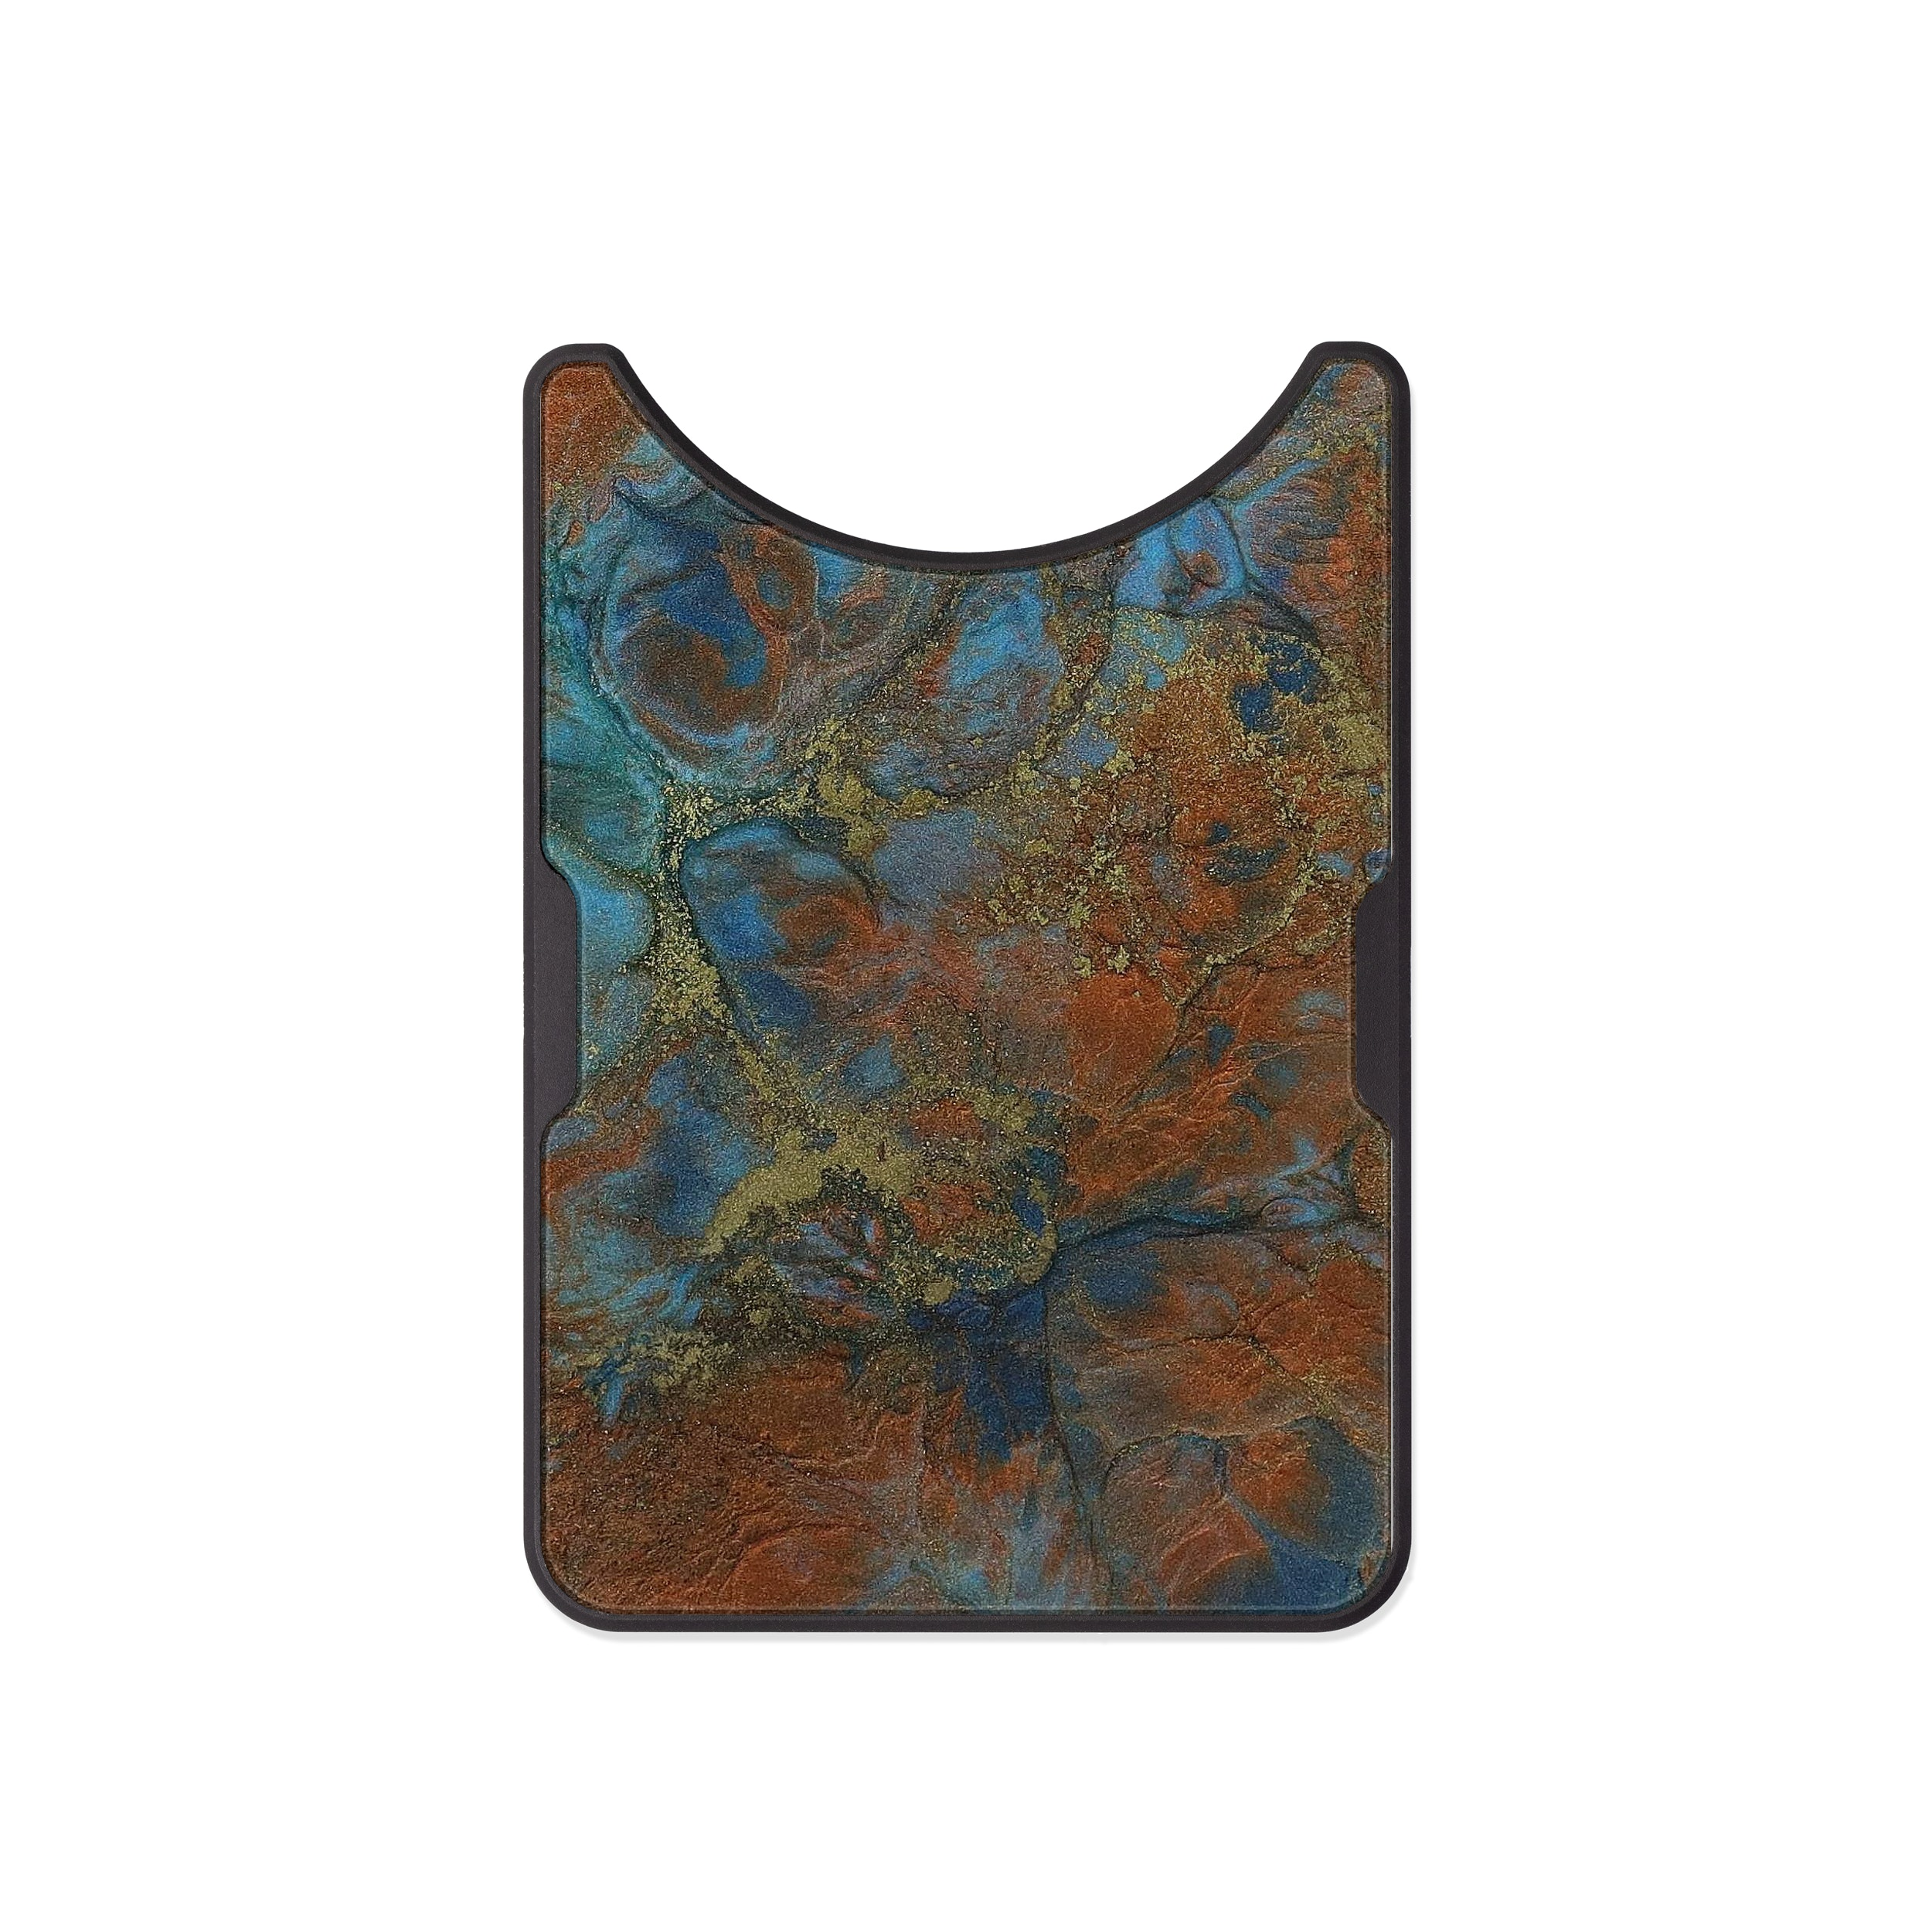 Alloy ResinArt Wallet - Rusty (Teal & Gold, 474480)